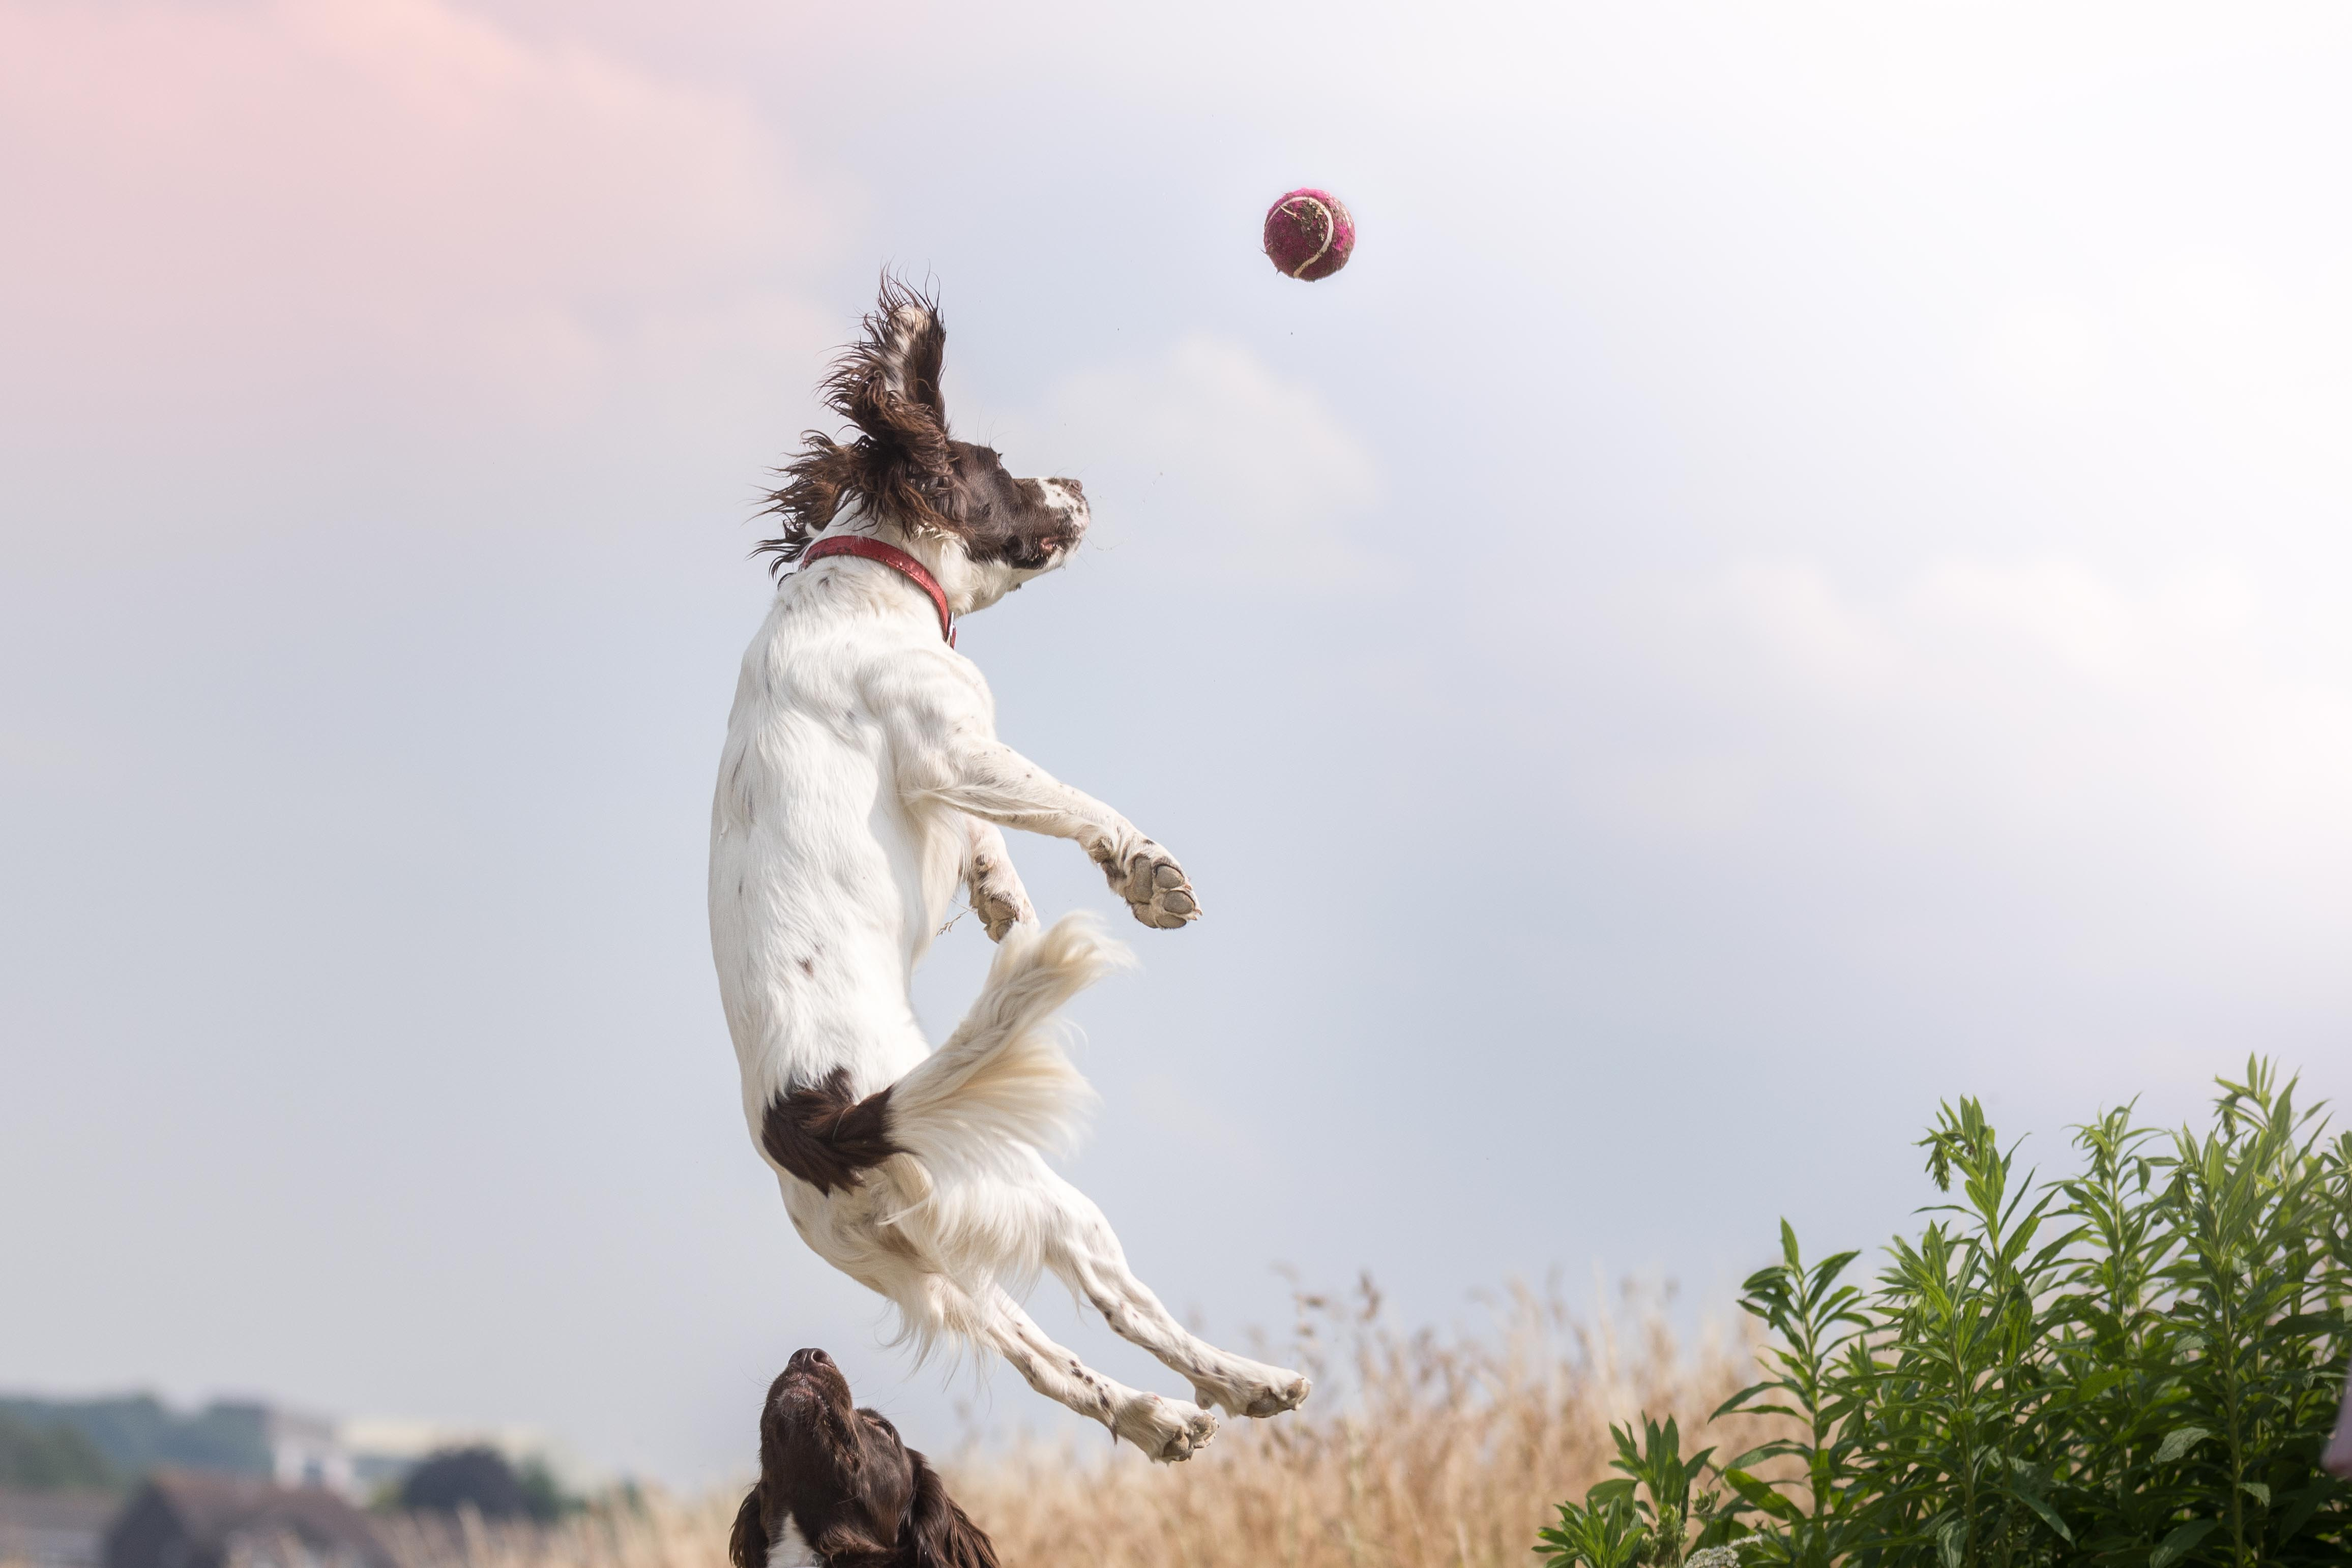 a dog jumping in the air